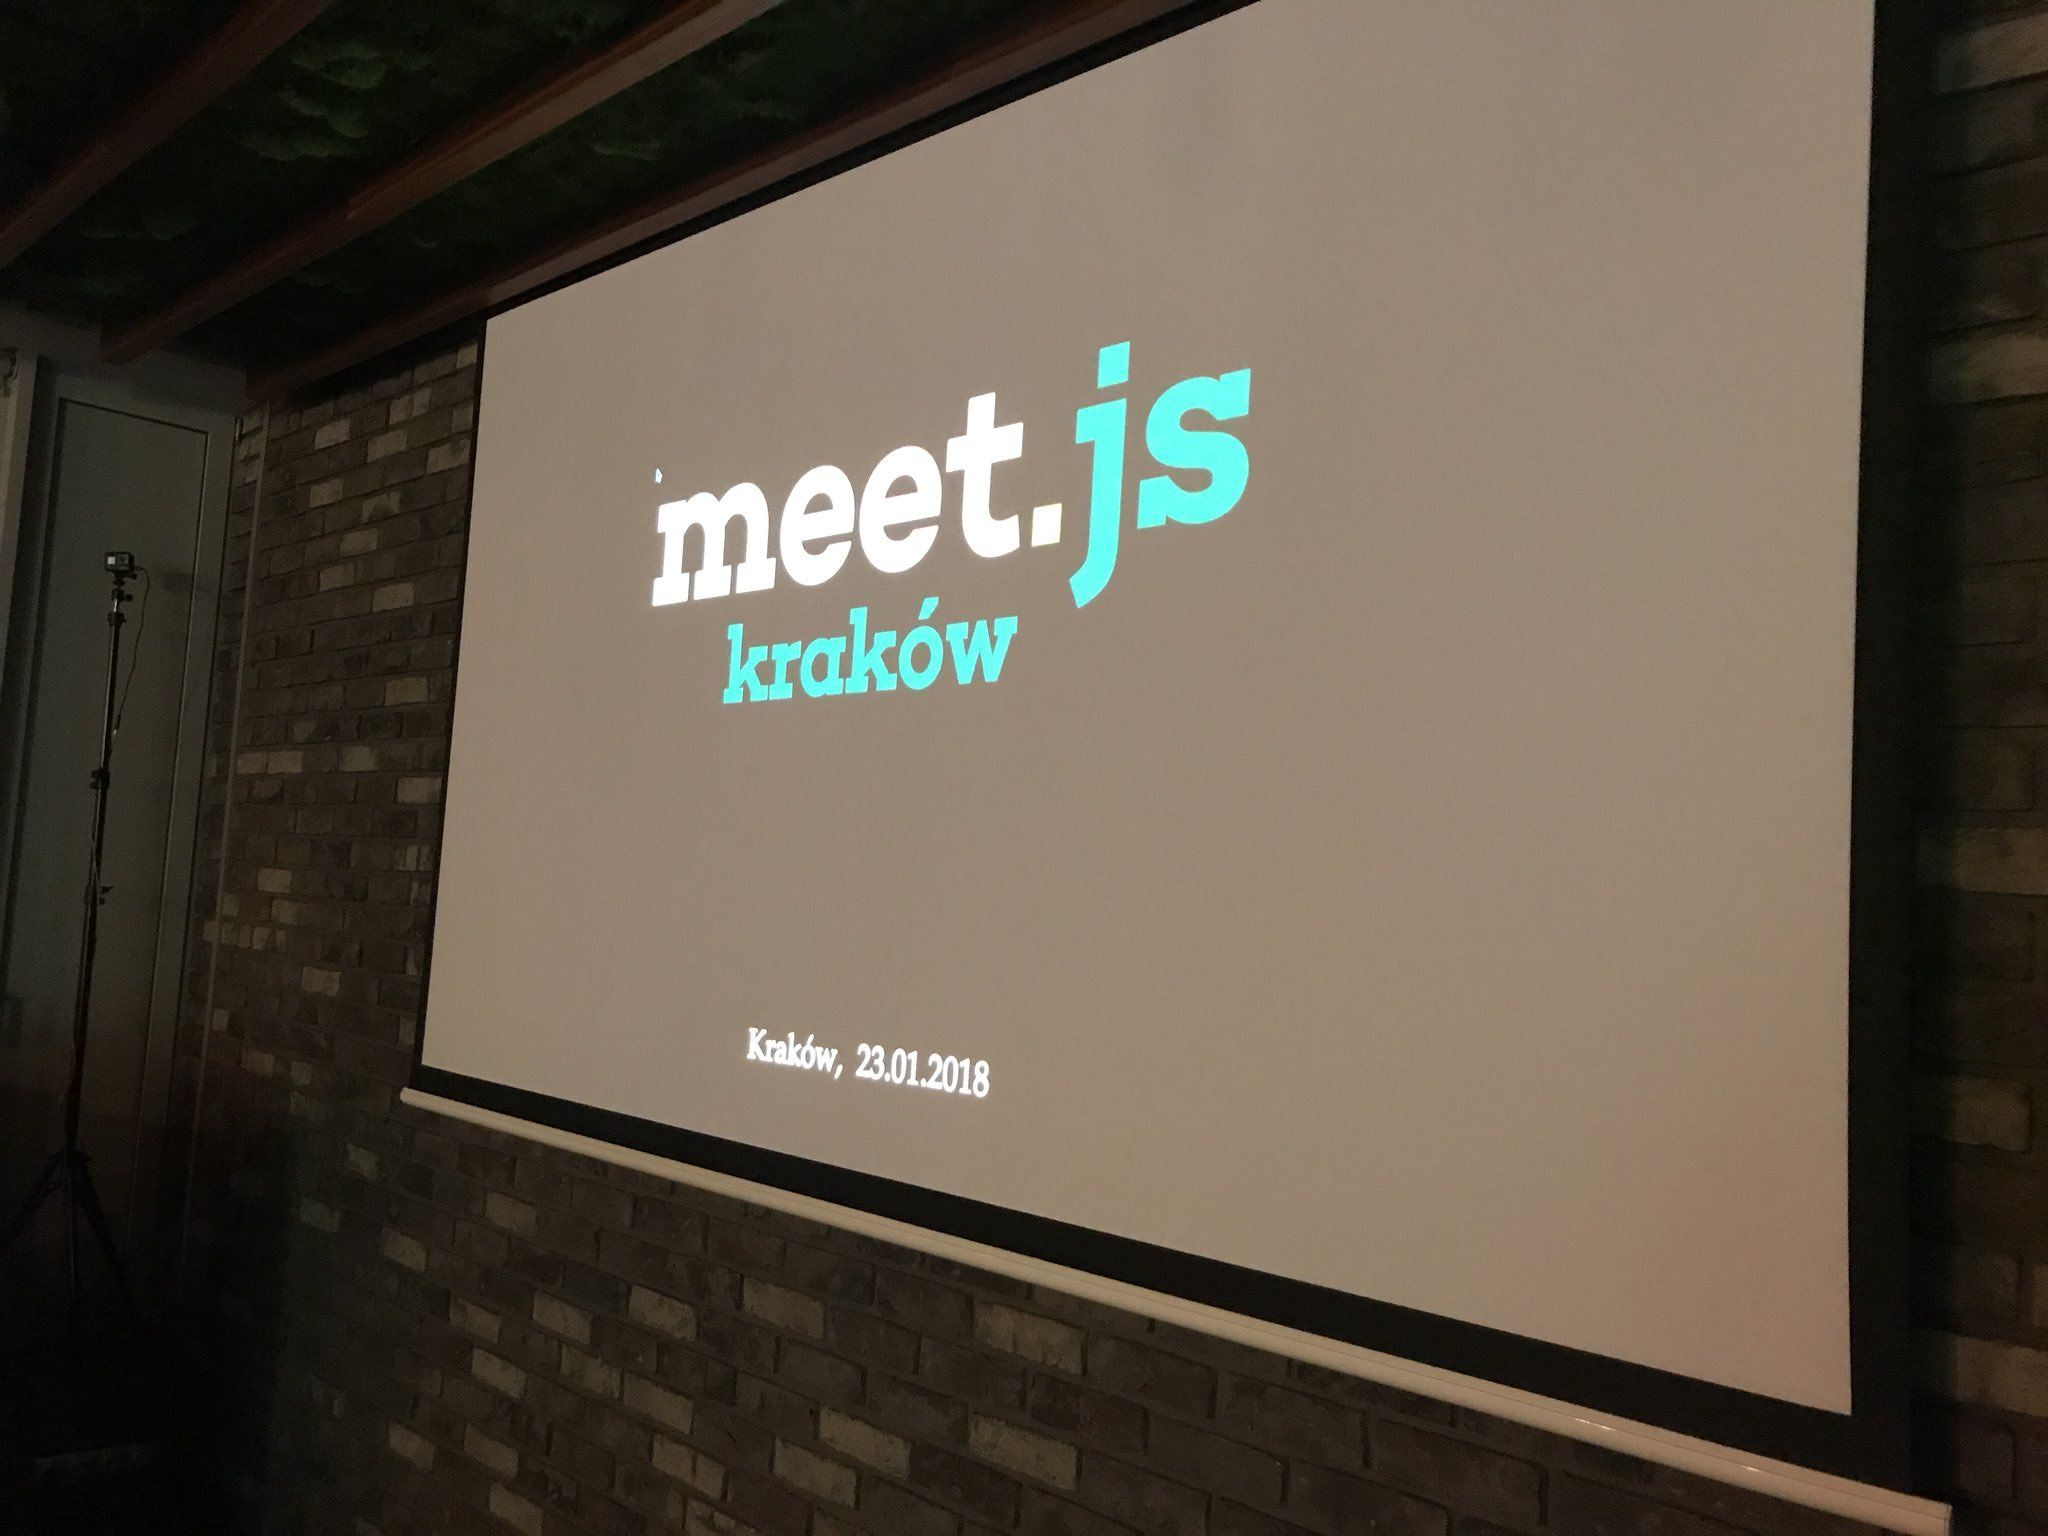 Meet js KRK December [EN] | Meetup